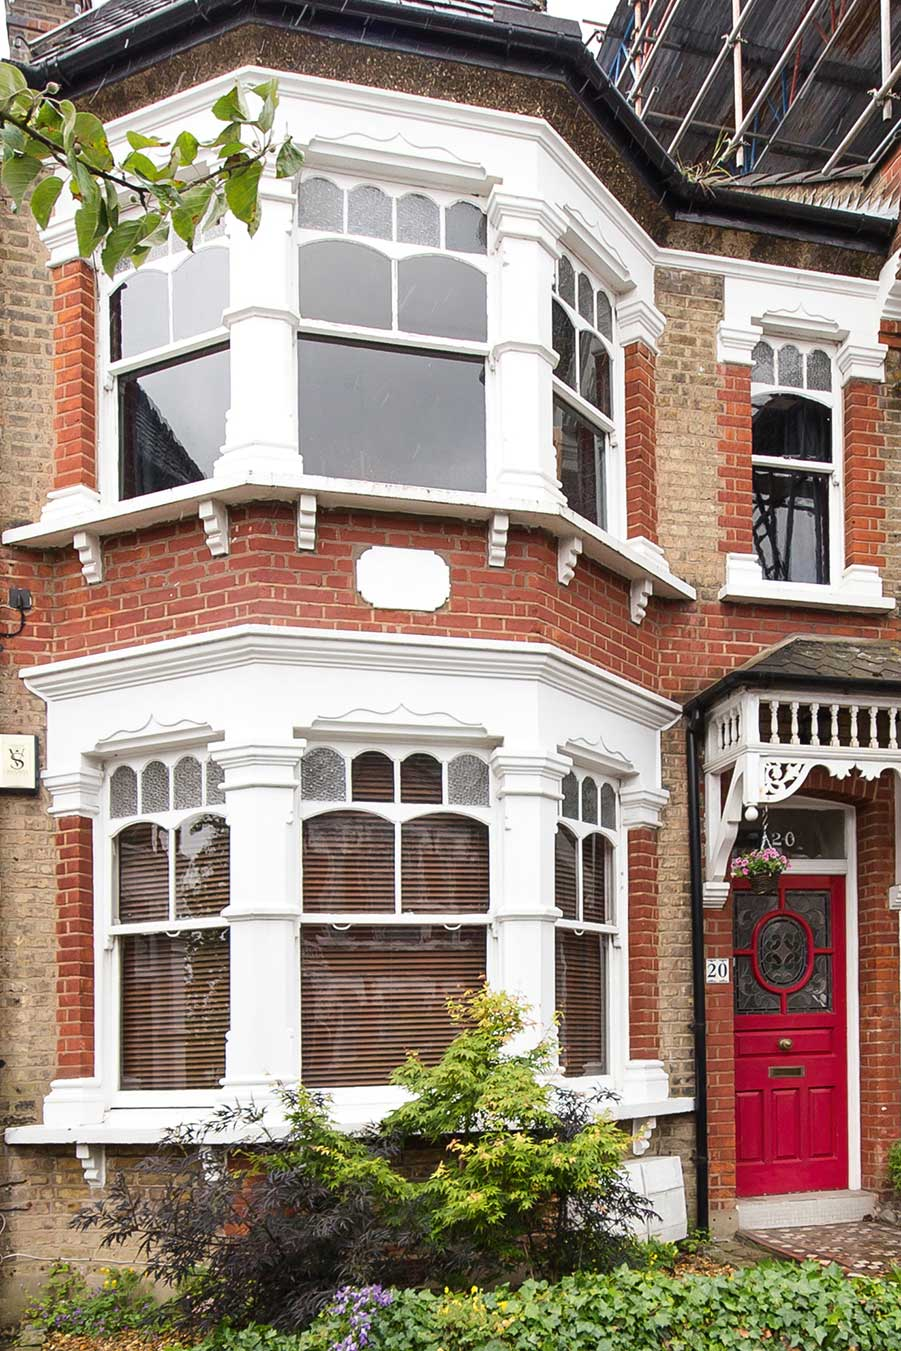 Duplex apartment Edwardian exterior